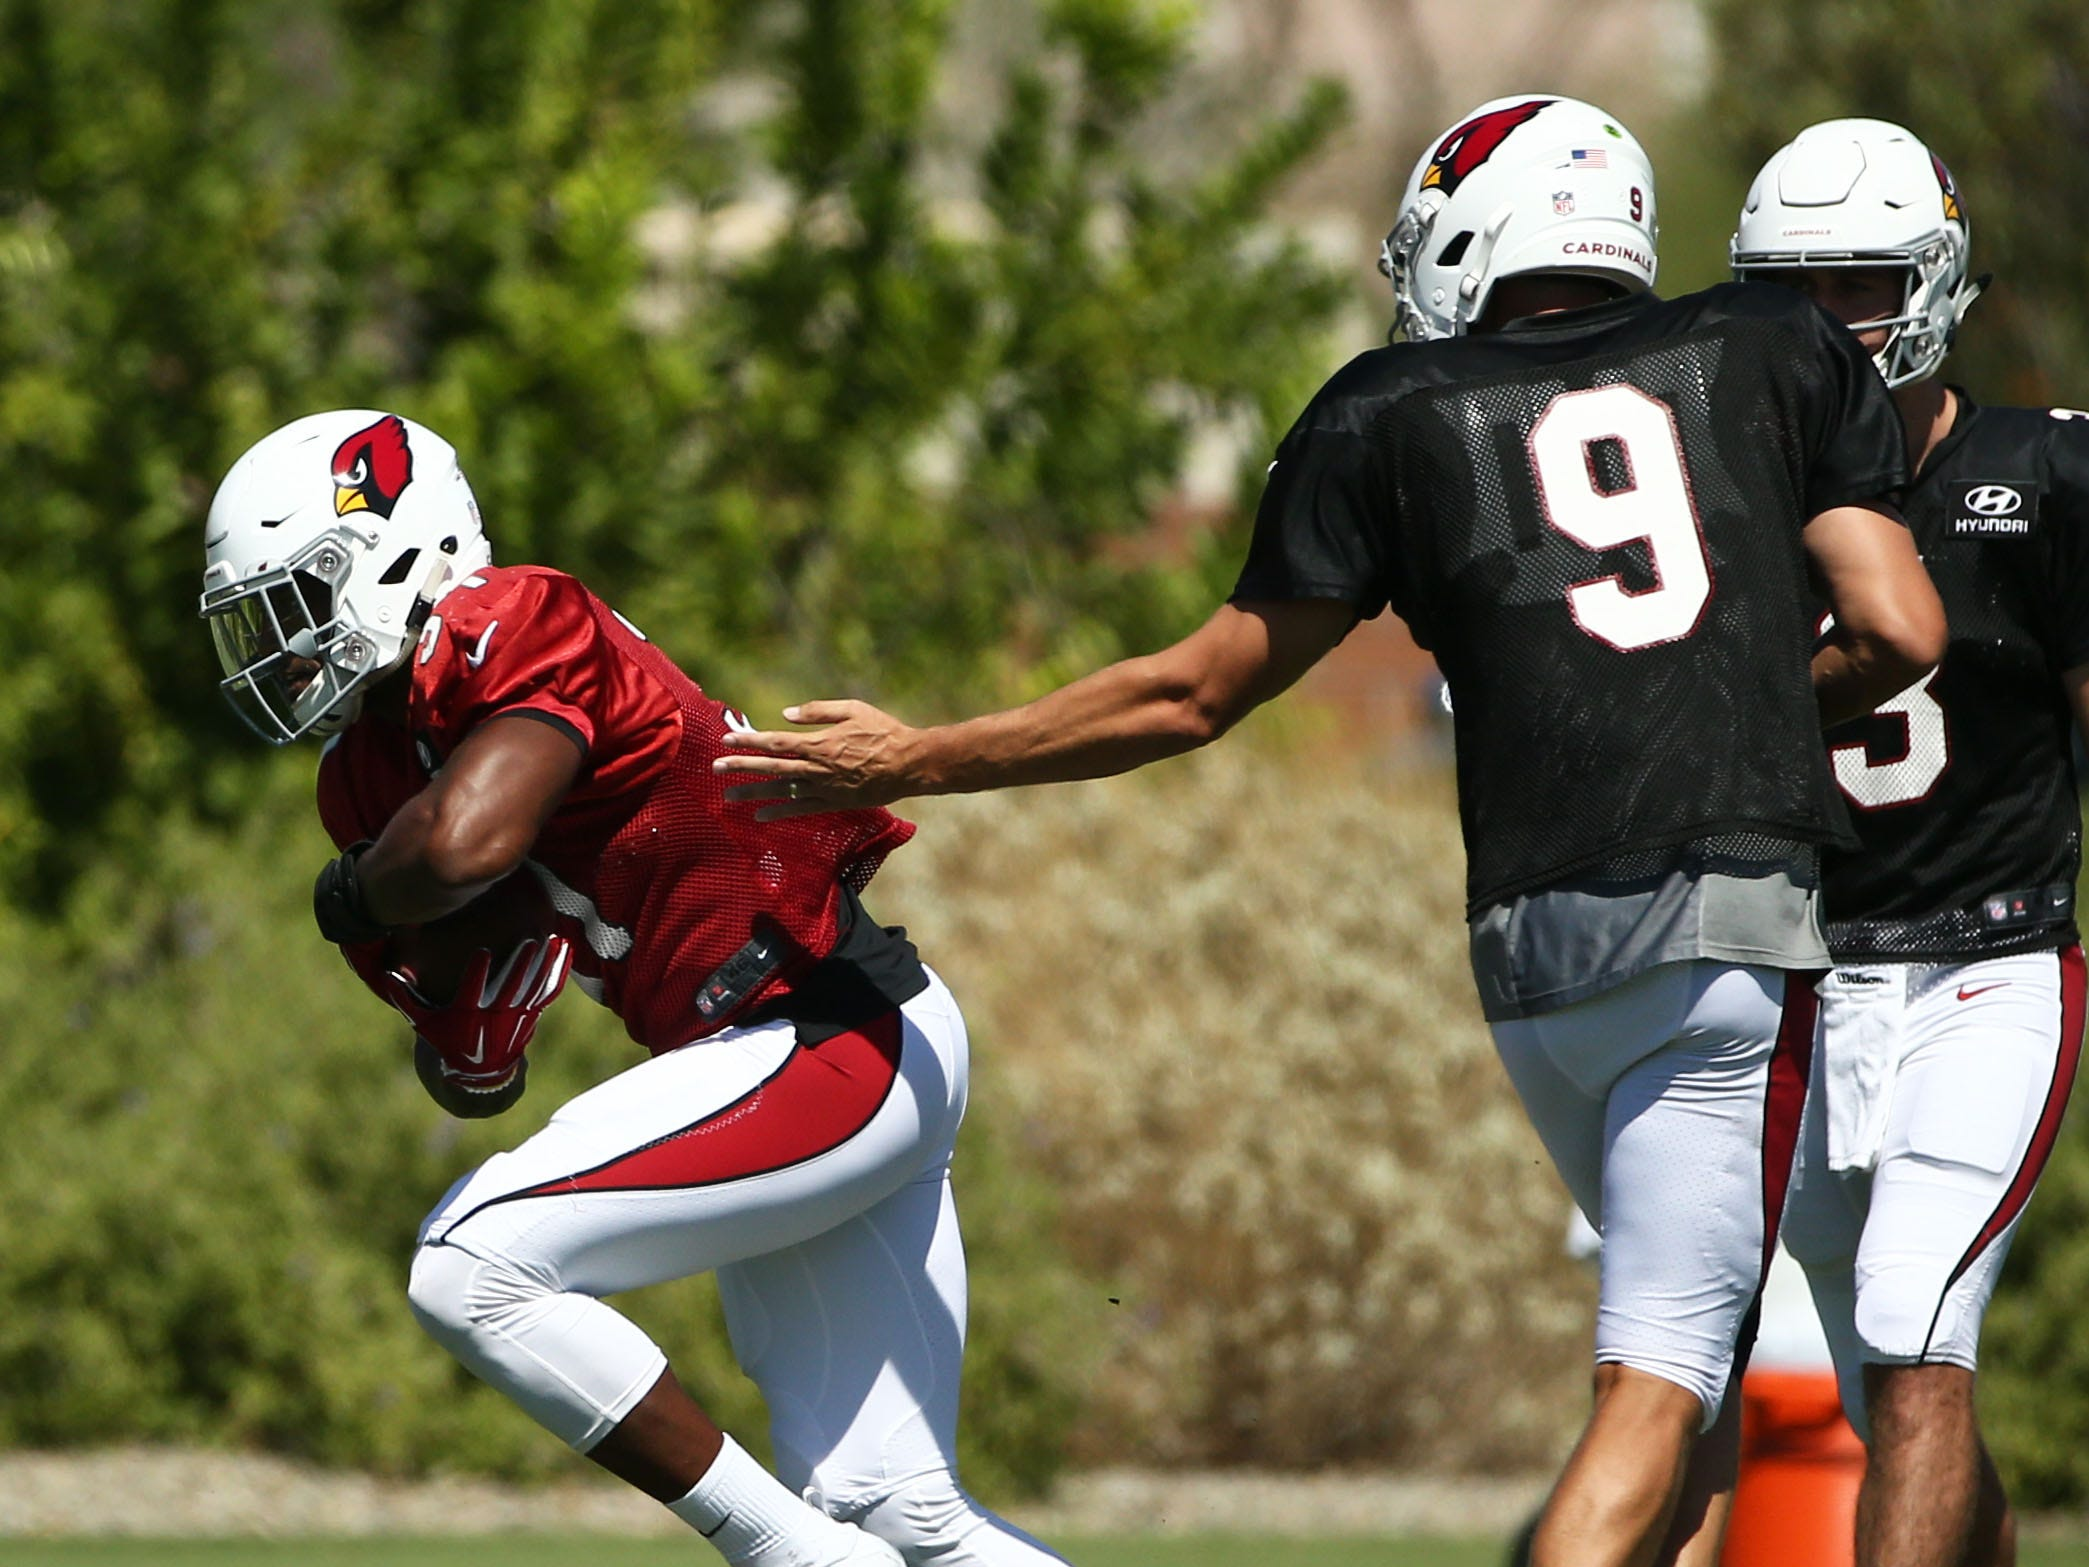 Arizona Cardinals quarterback Sam Bradford (9) hands the ball to running back David Johnson (31) during practice on Sep. 5, 2018 at the Arizona Cardinals Training Facility in Tempe, Ariz.